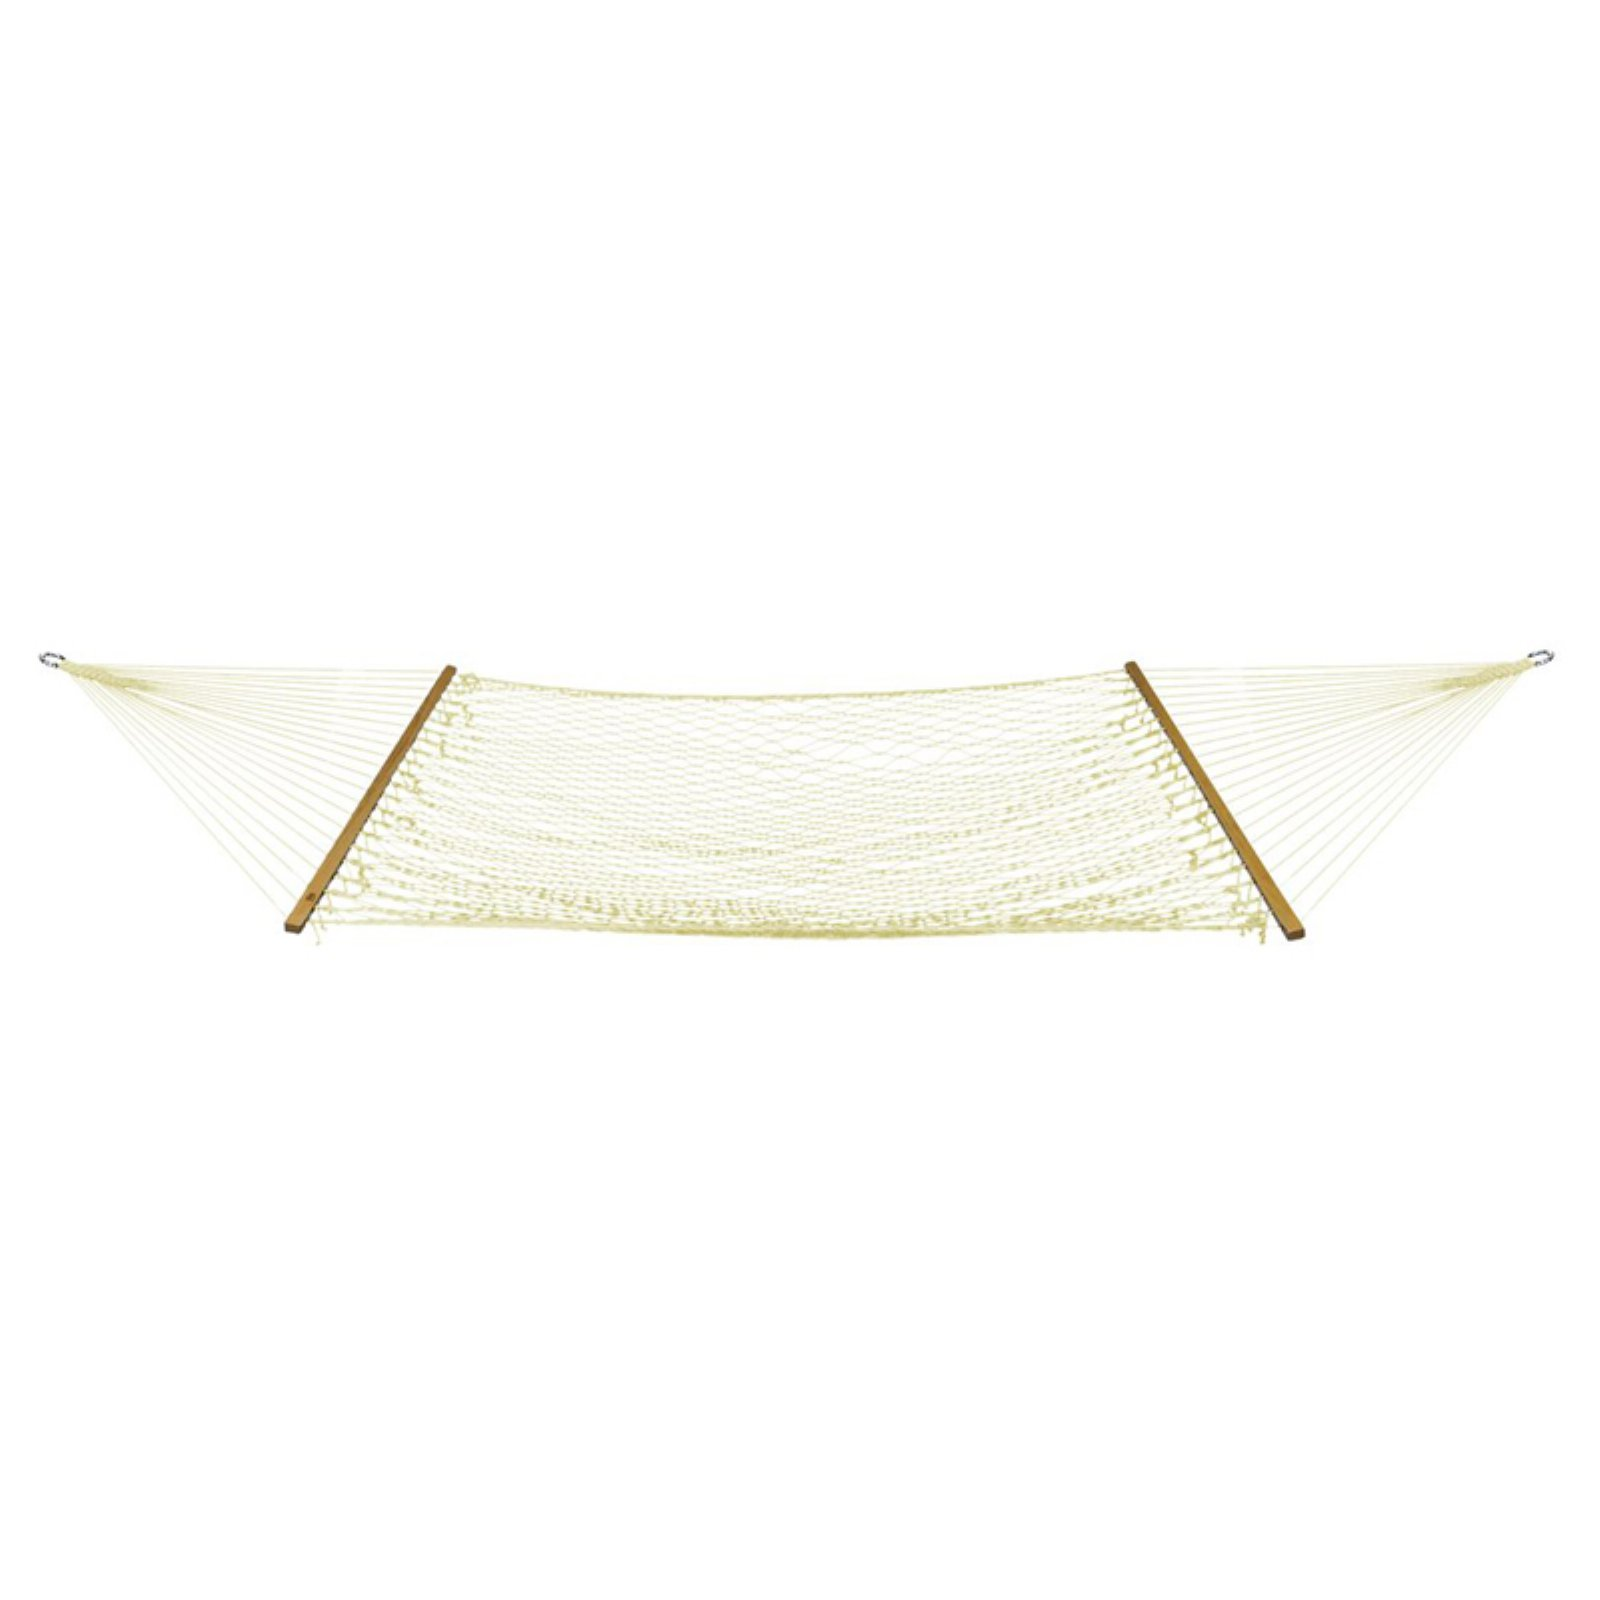 Bliss Hammocks Polyester Classic Rope Single Hammock by Bliss Hammocks Inc